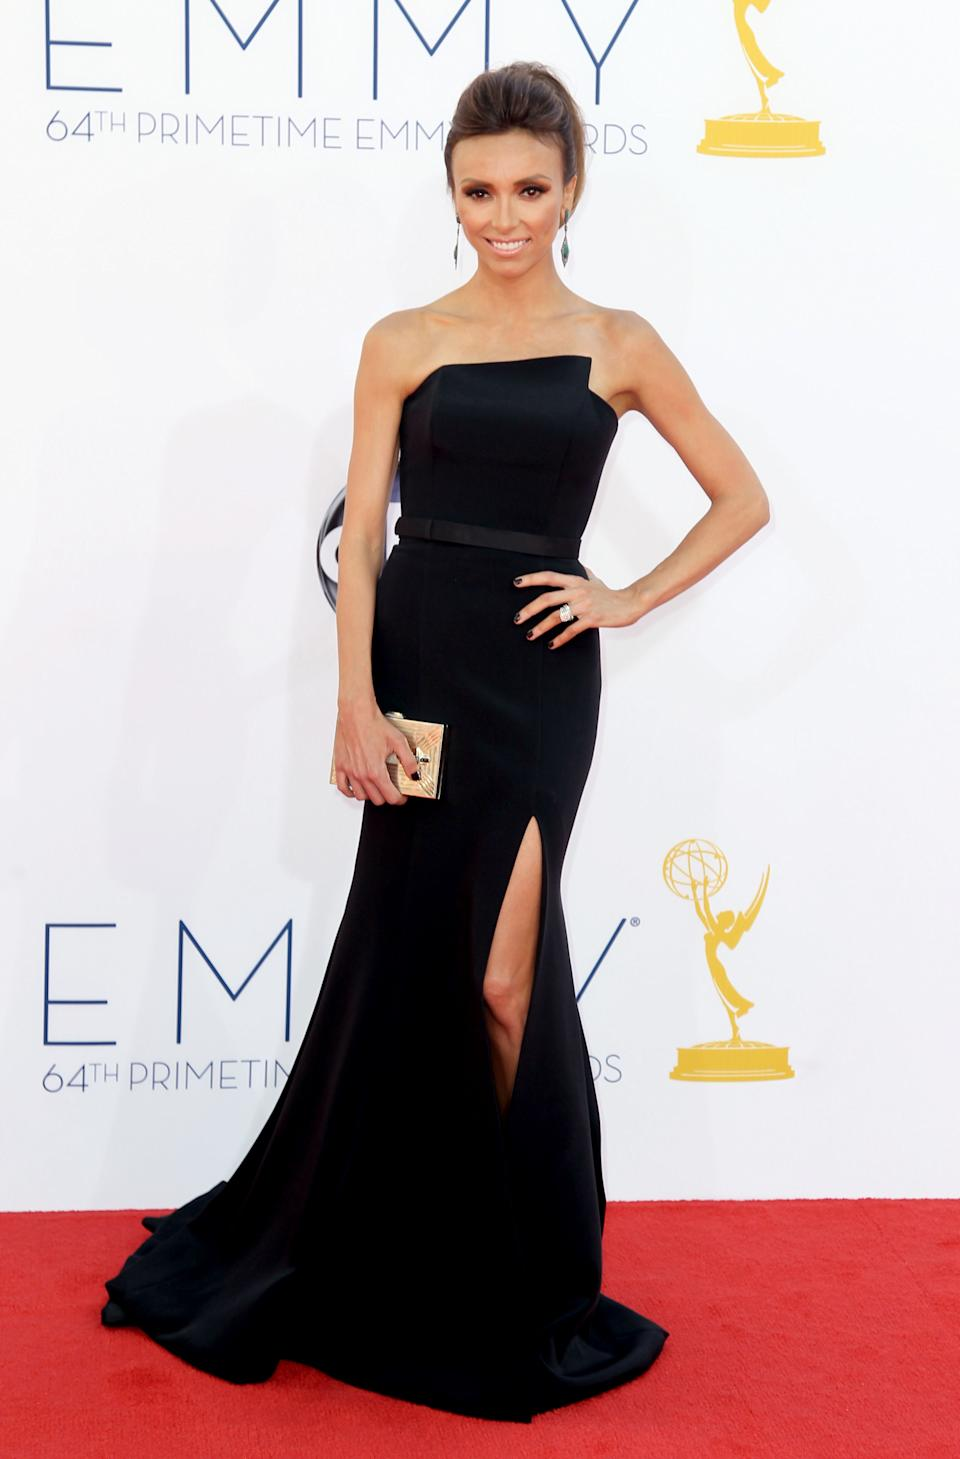 Giuliana Rancic arrives at the 64th Primetime Emmy Awards at the Nokia Theatre on Sunday, Sept. 23, 2012, in Los Angeles. (Photo by Matt Sayles/Invision/AP)